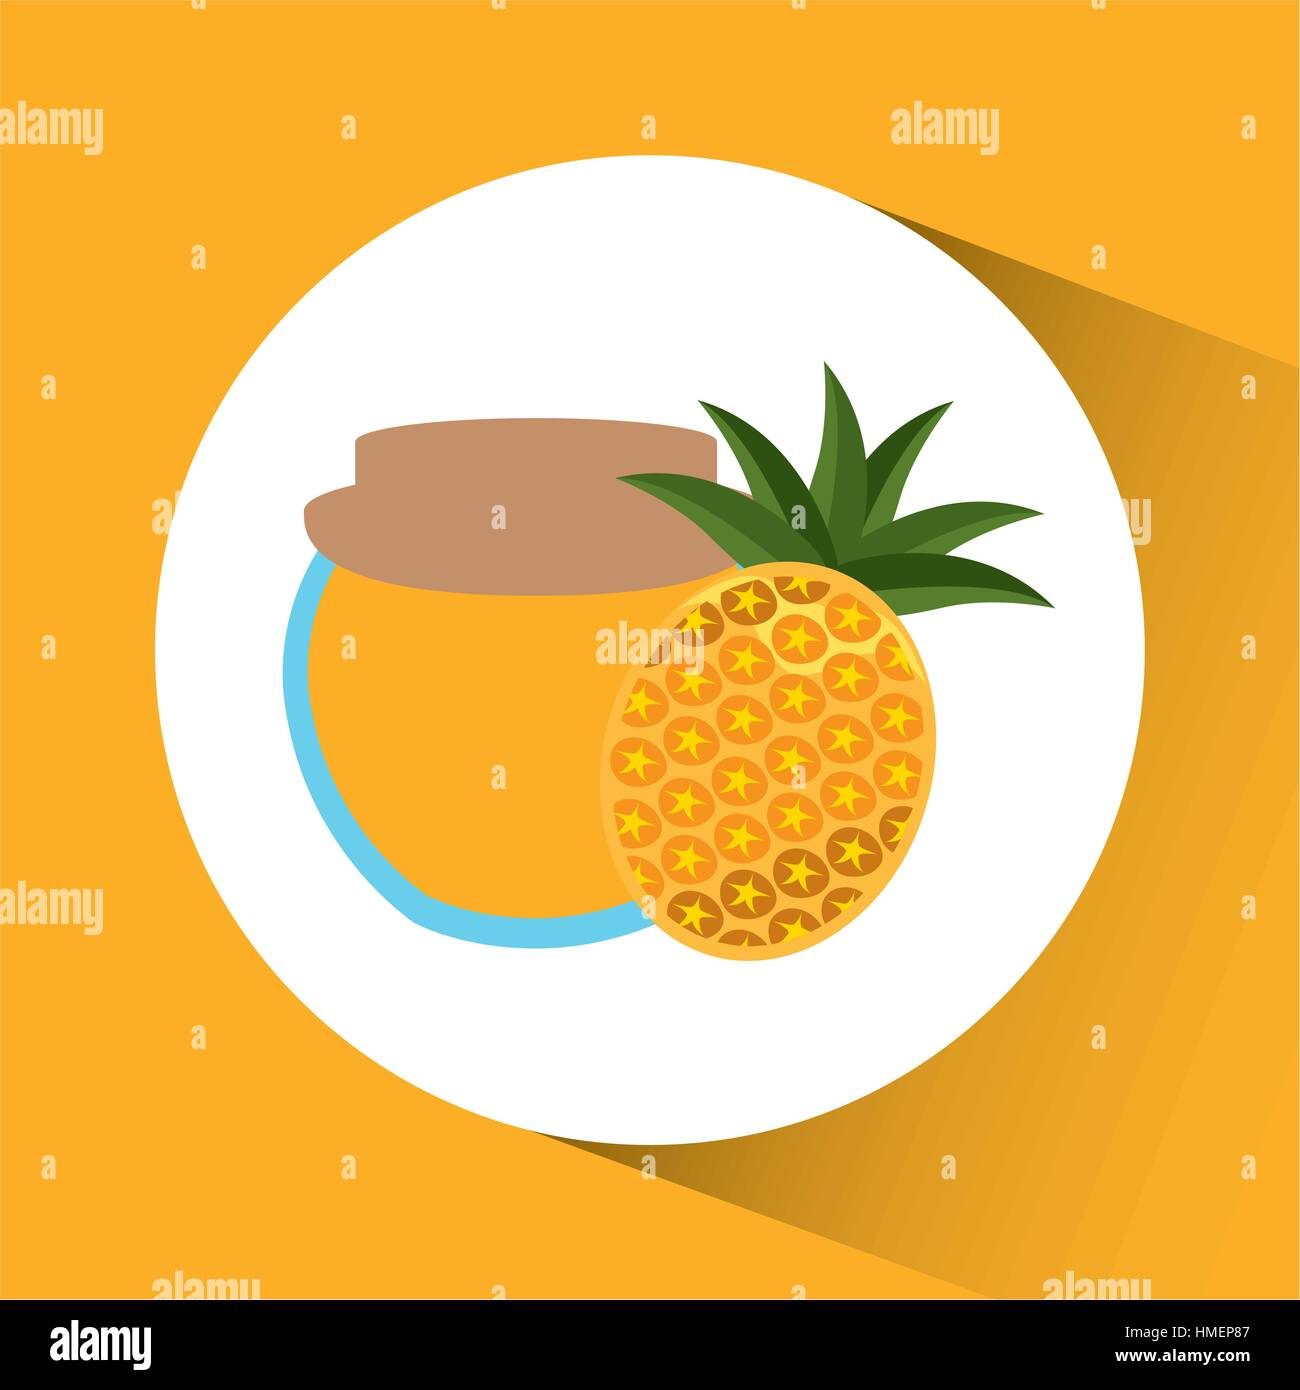 Preserved fresh fruit icon vector illustration design - Stock Vector